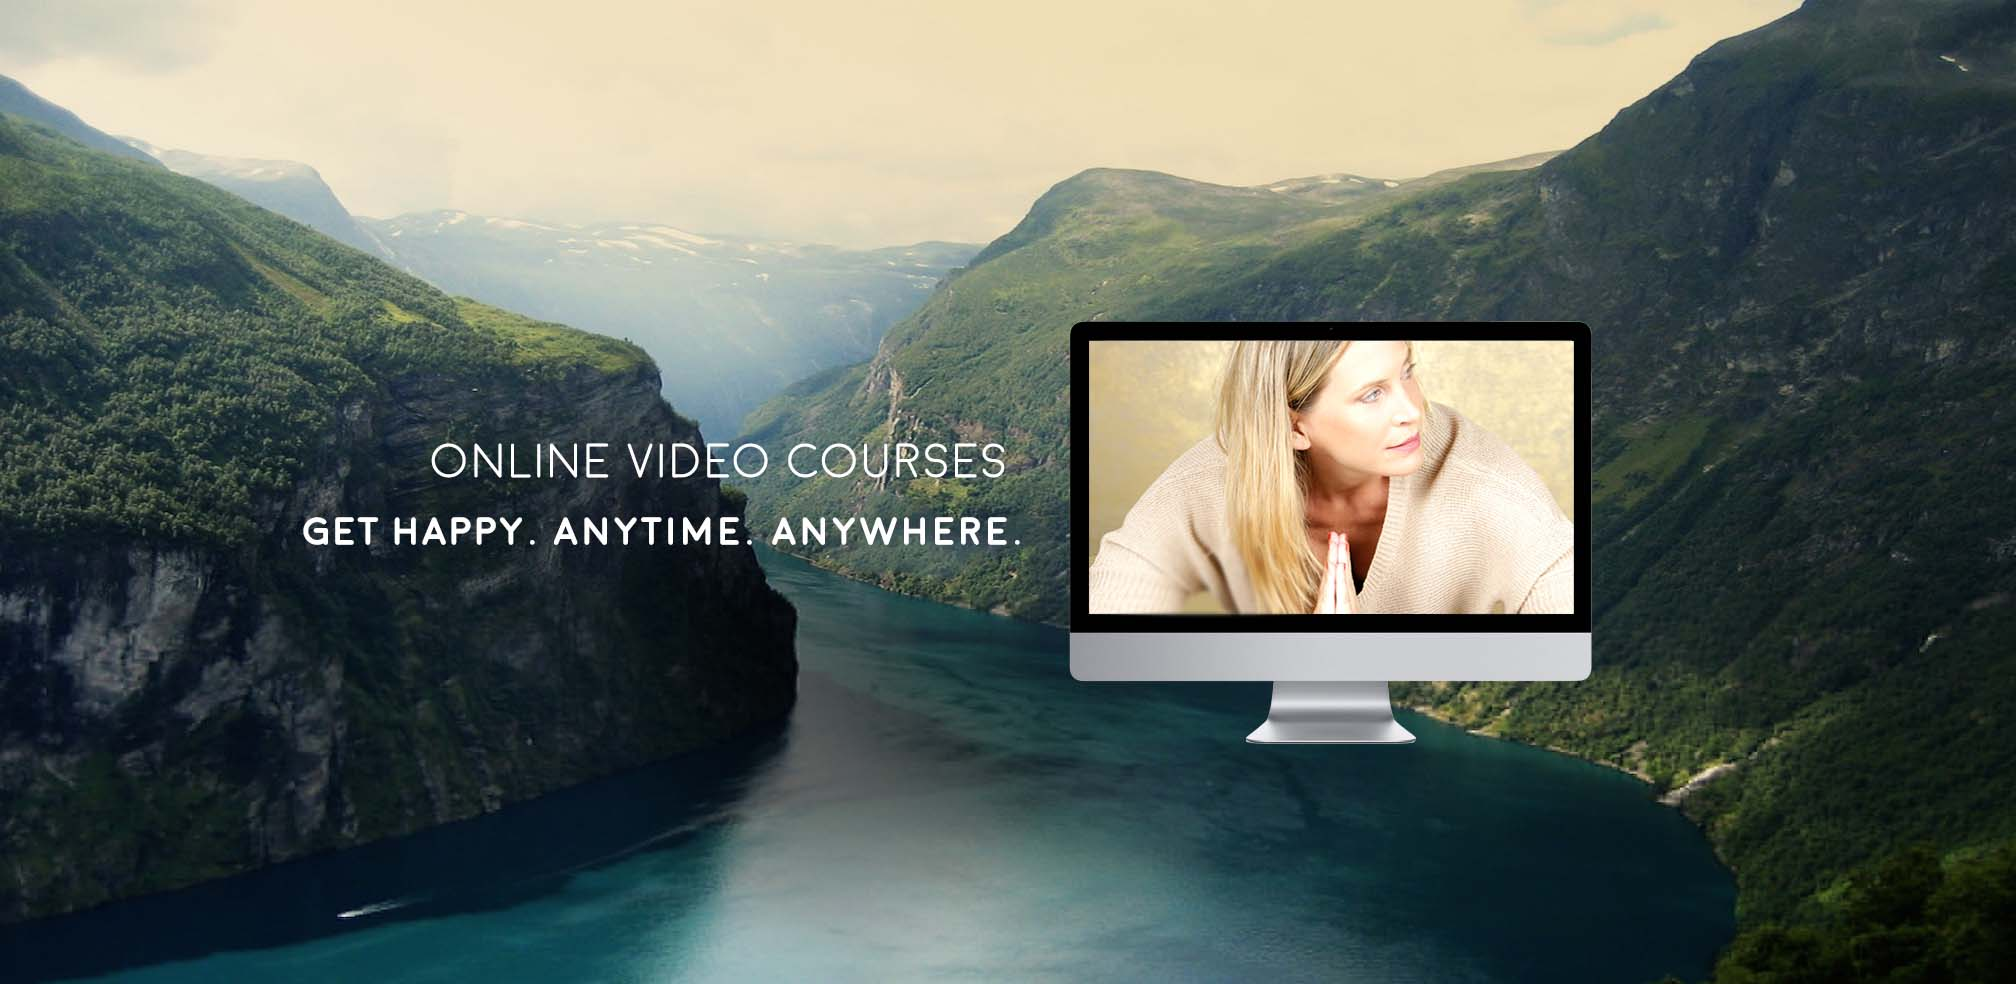 Online Video Courses